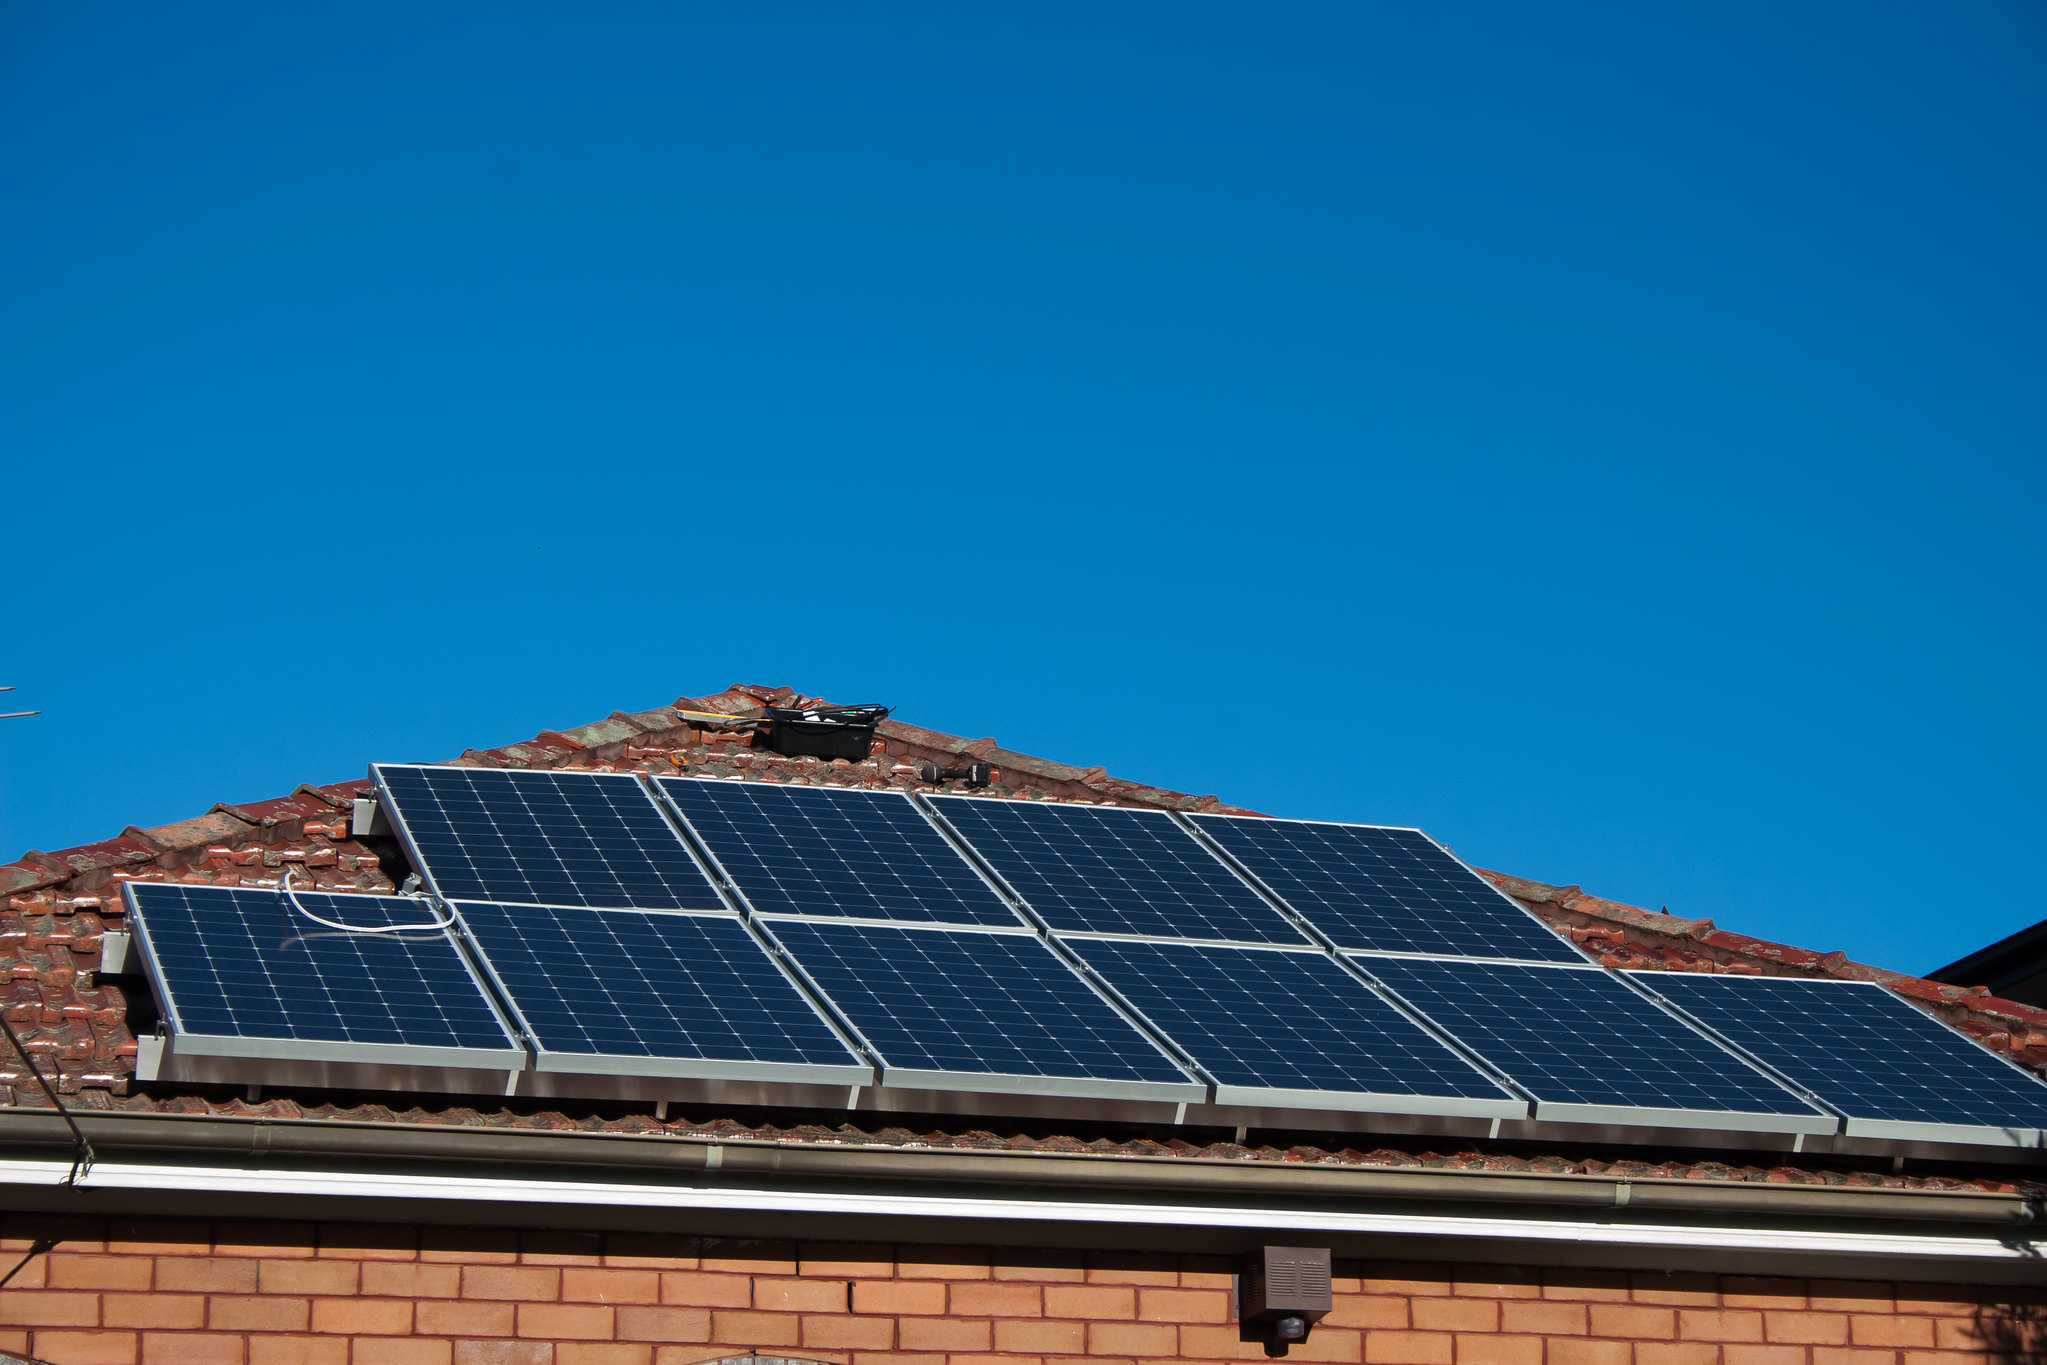 Solar panels on the roof as an opportunity